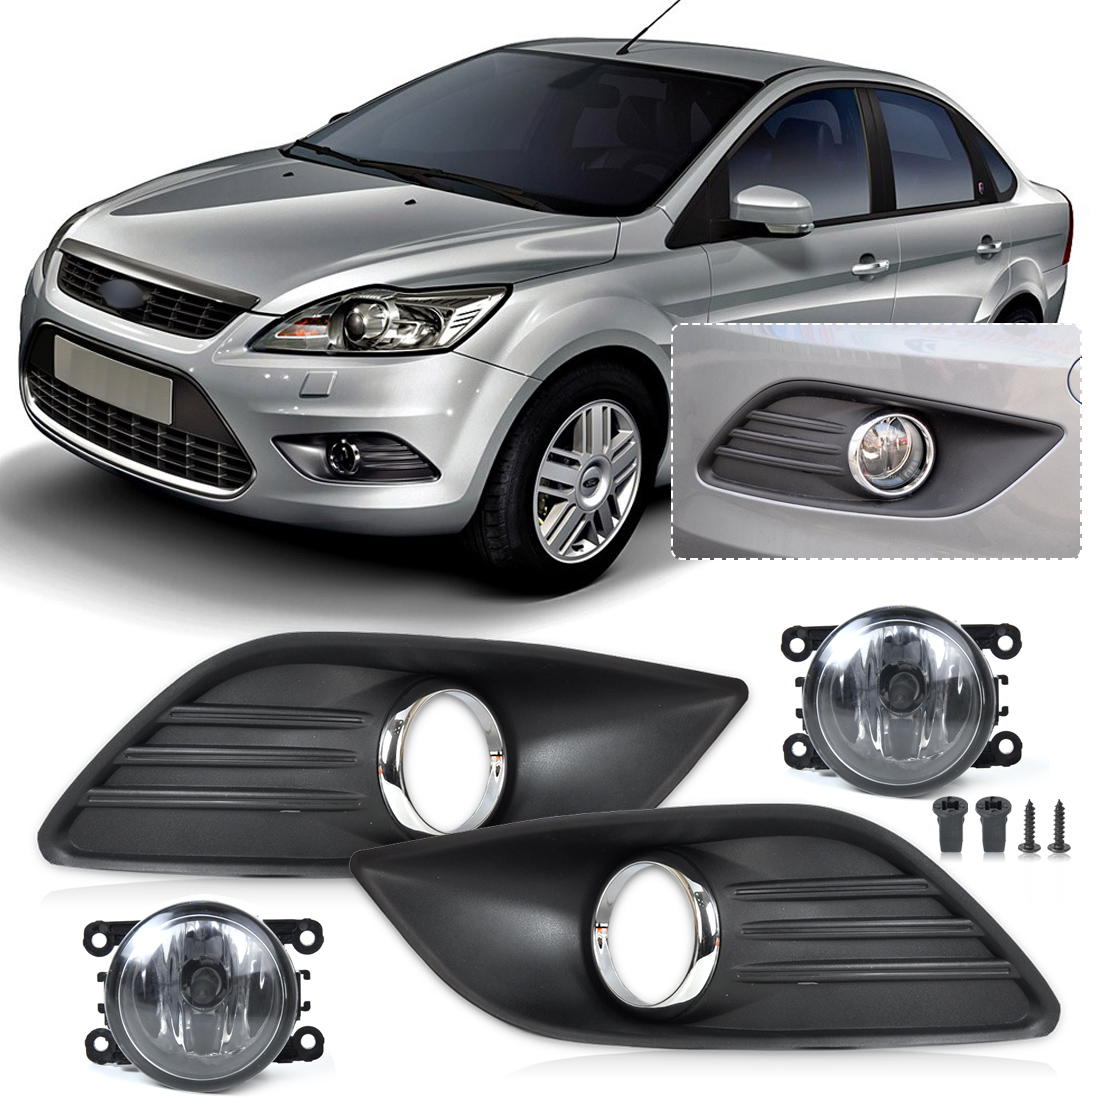 DWCX 2pcs Front Left + Right Side Lower Bumper Fog Light Grille + 2pcs Lamp Kit For Ford Focus Sedan 2009 2010 2011 1set front chrome housing clear lens driving bumper fog light lamp grille cover switch line kit for 2007 2009 toyota camry